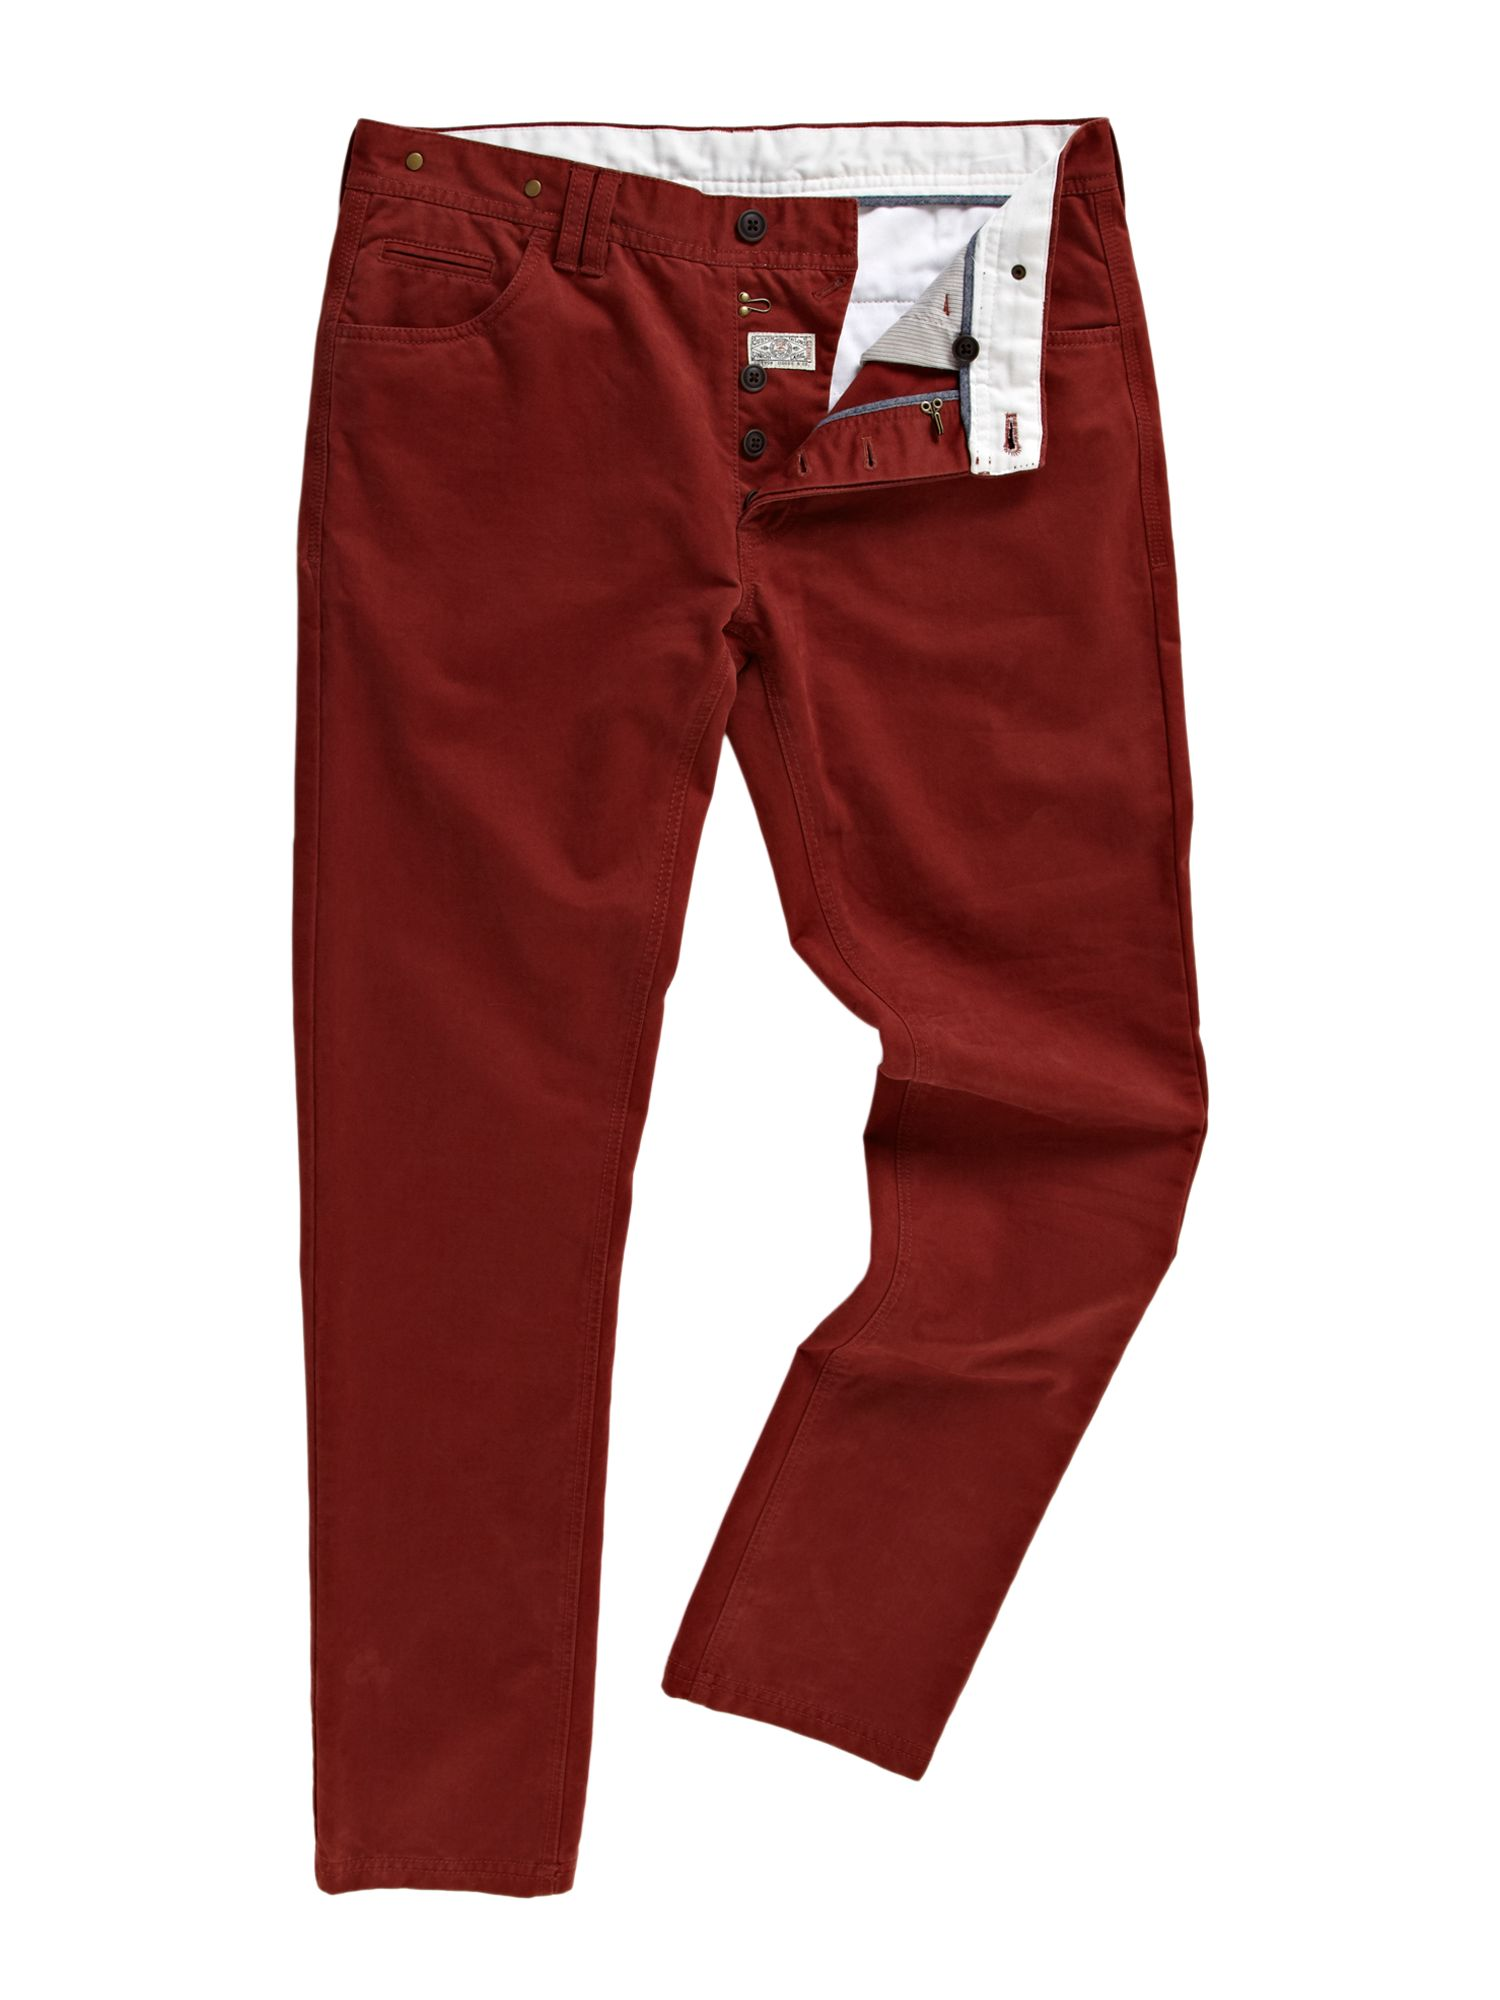 Lain limited edition tailored chino